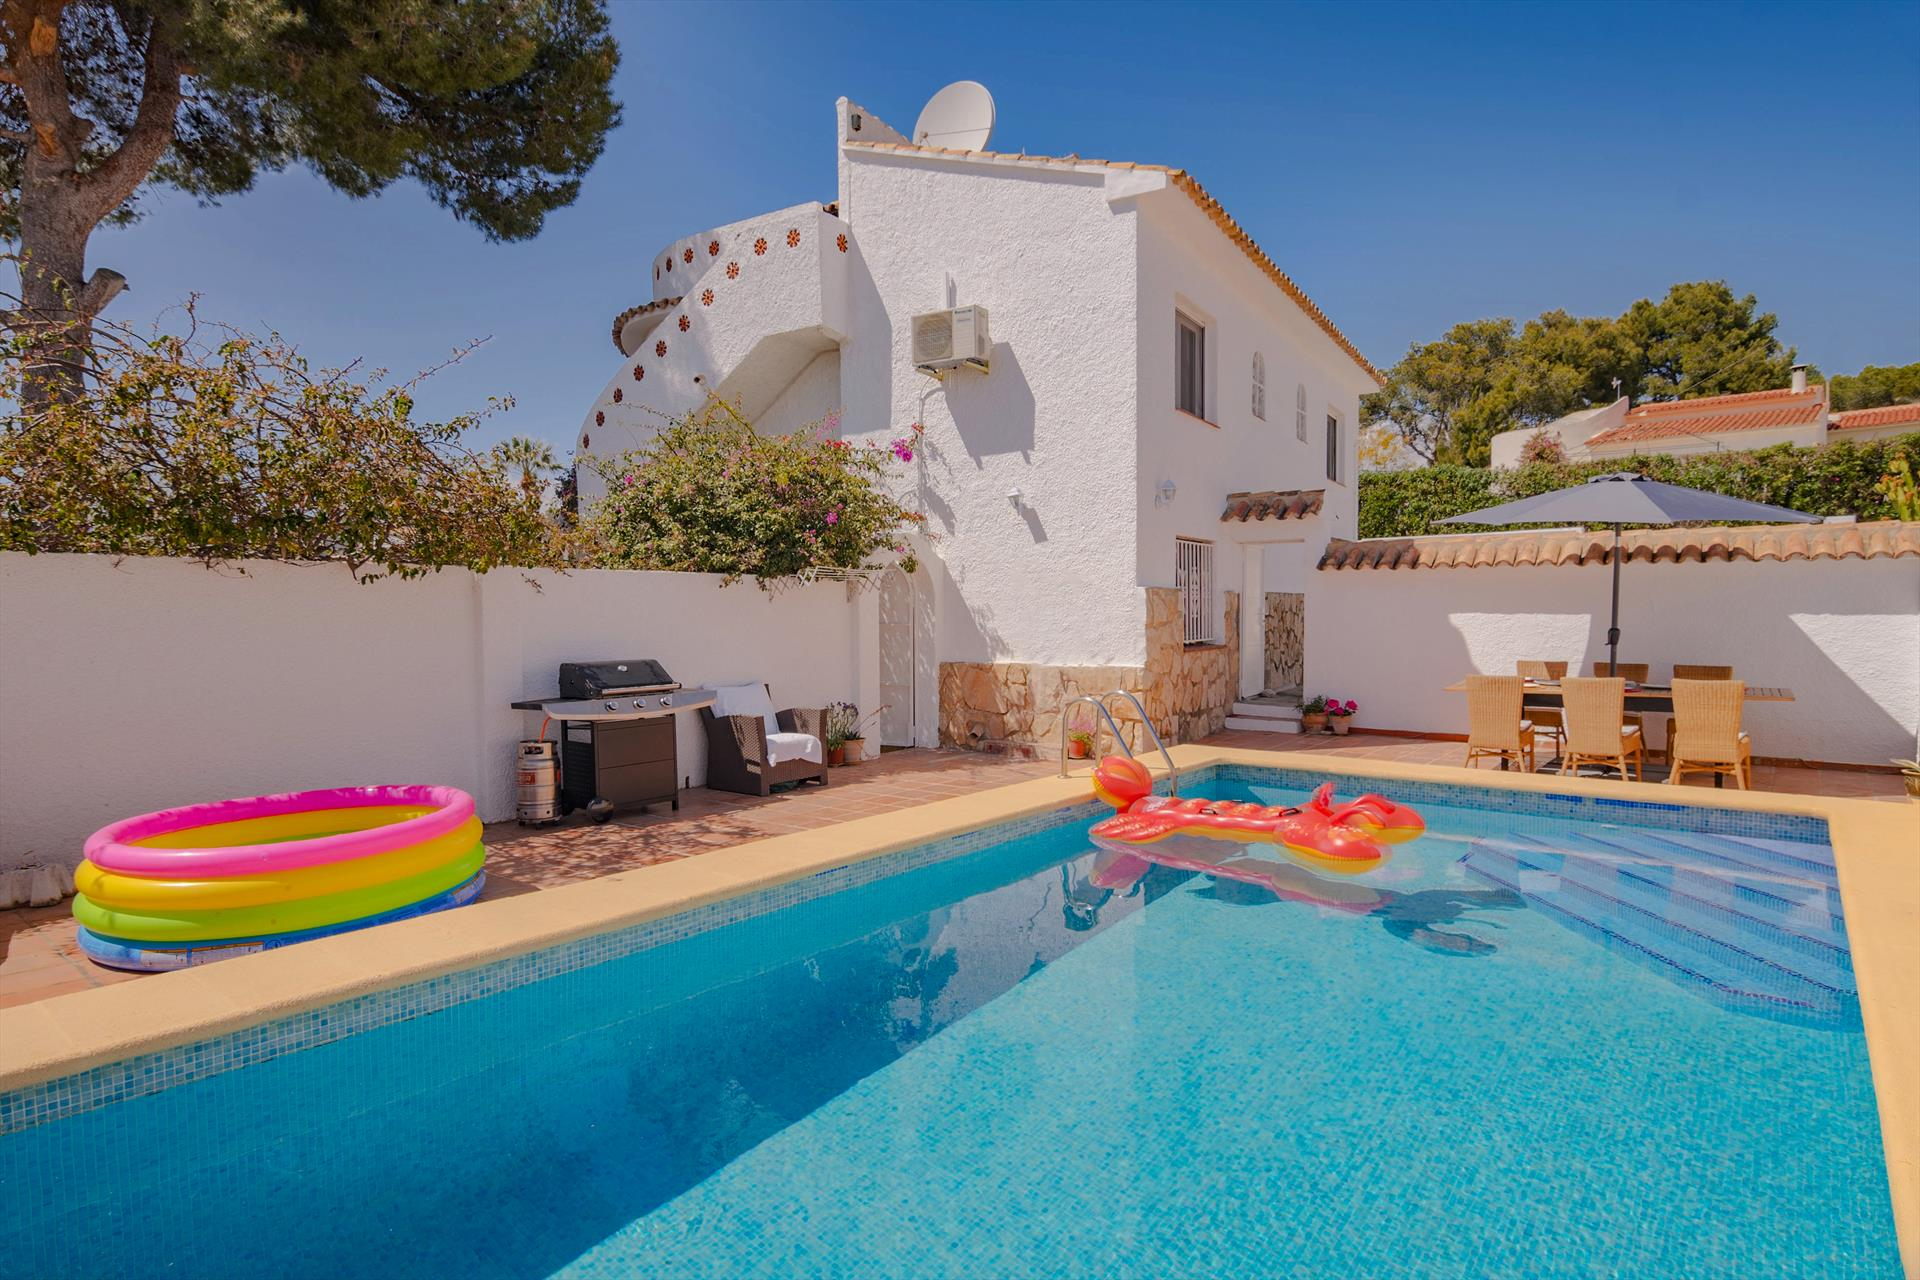 Rita, Villa  with private pool in Benissa, on the Costa Blanca, Spain for 4 persons...